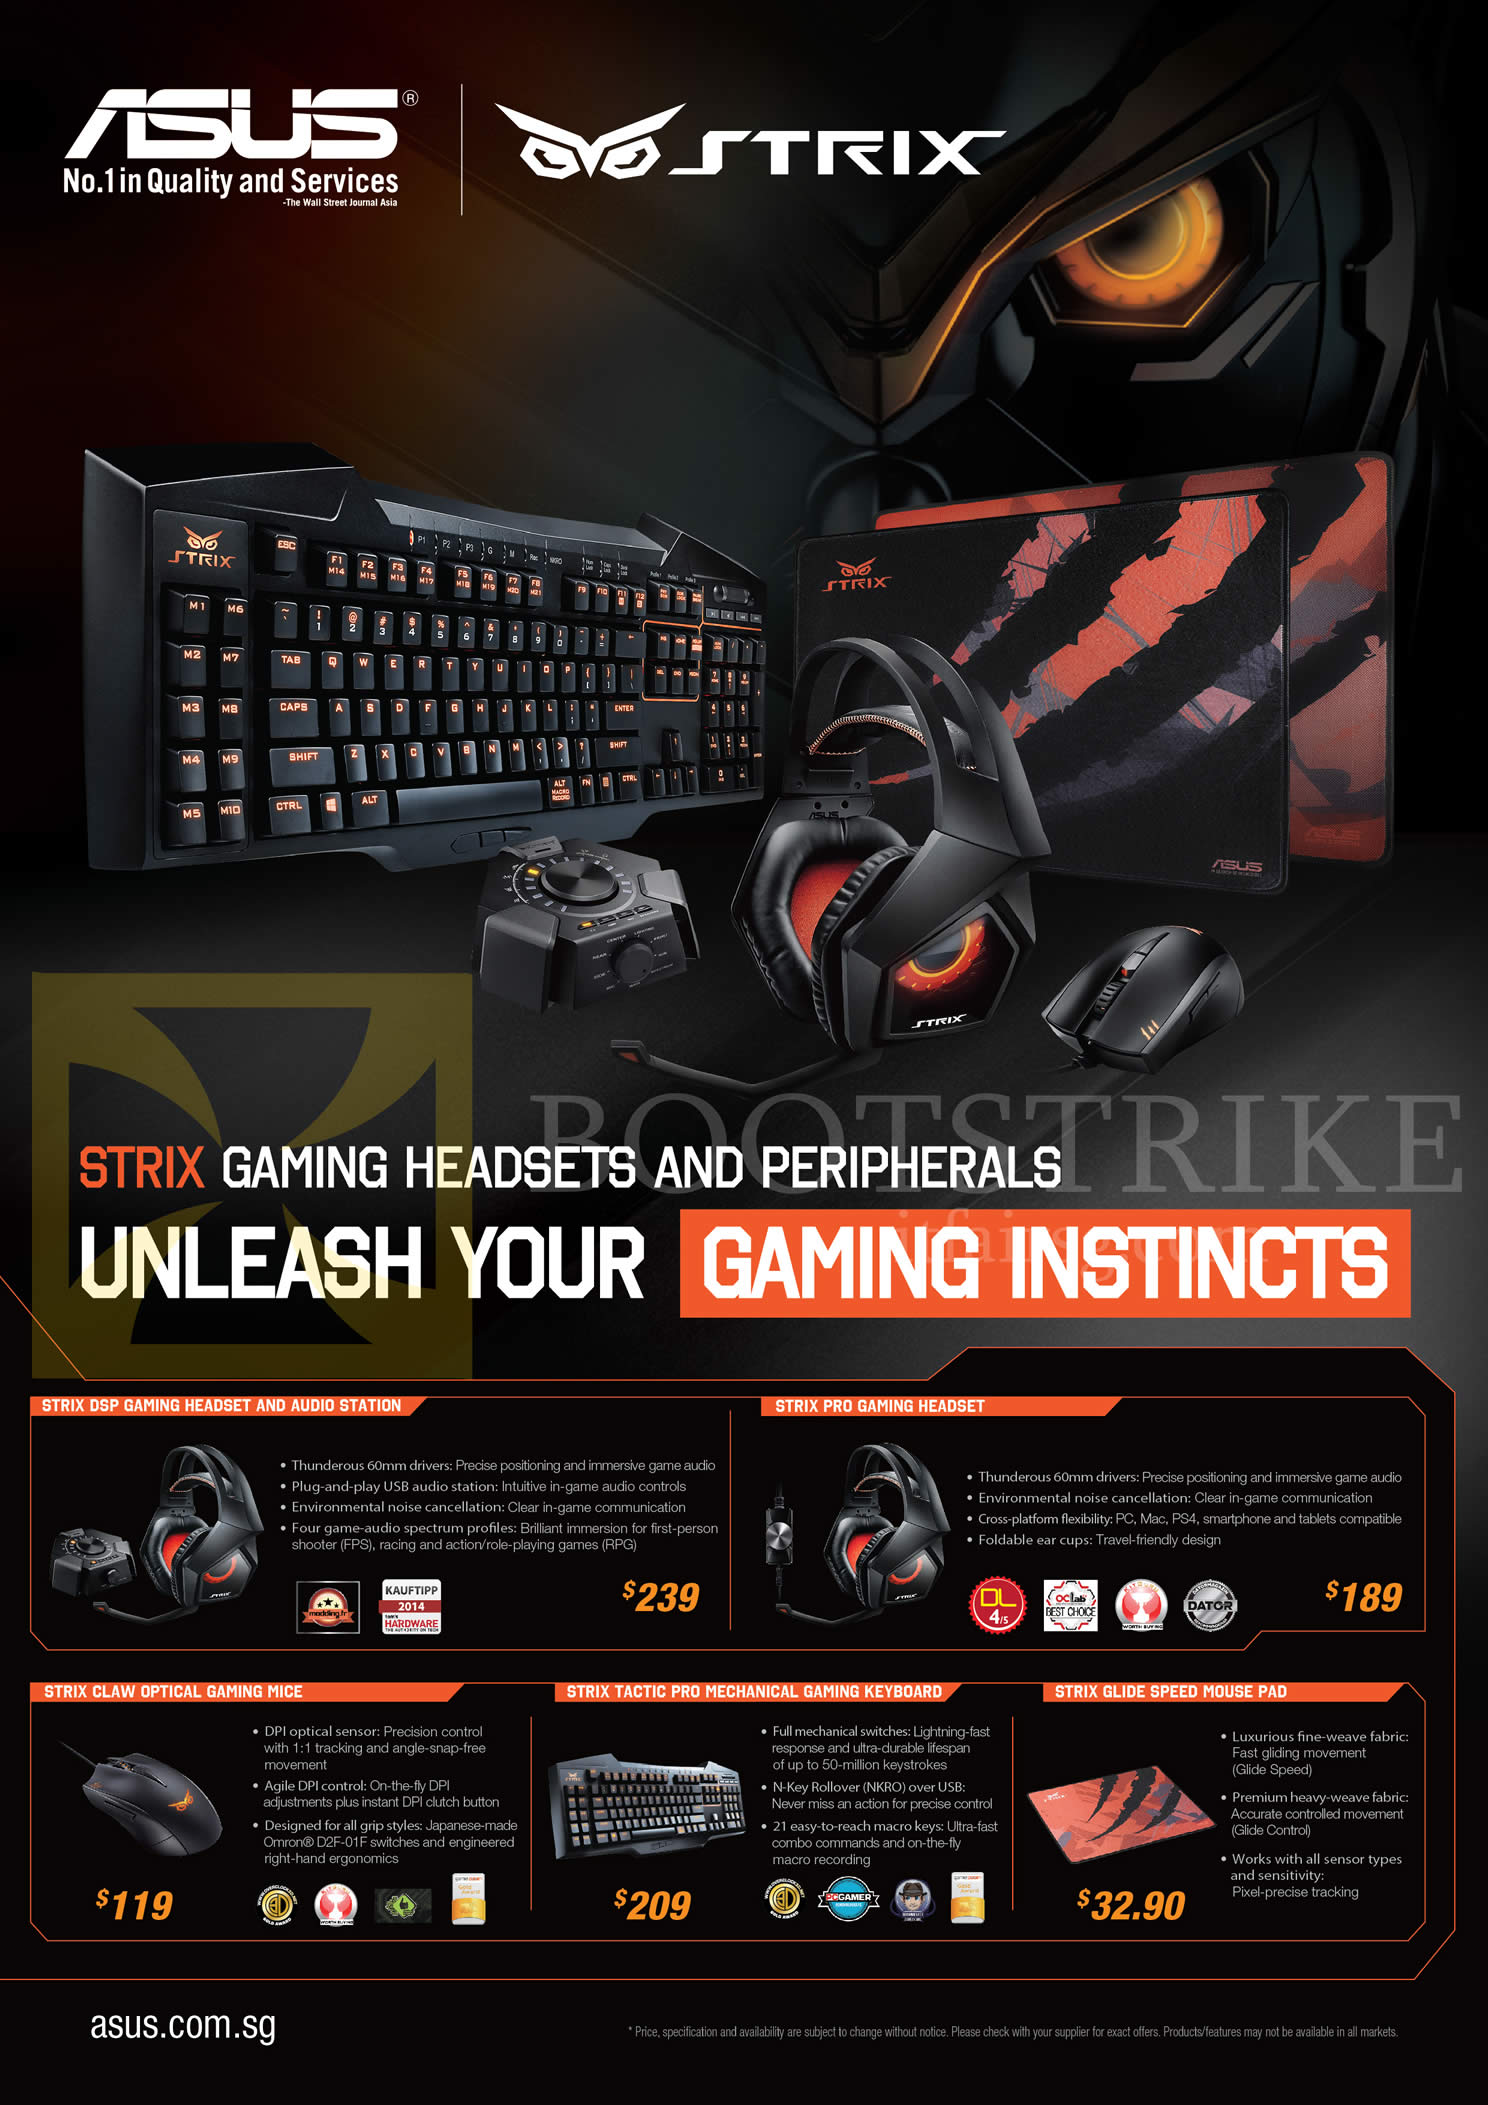 IT SHOW 2015 price list image brochure of ASUS Accessories Strix Audio Station, Headset, Mouse, Keyboard, Mousepad, DSP, Pro, Claw, Tactic Pro, Glide Speed